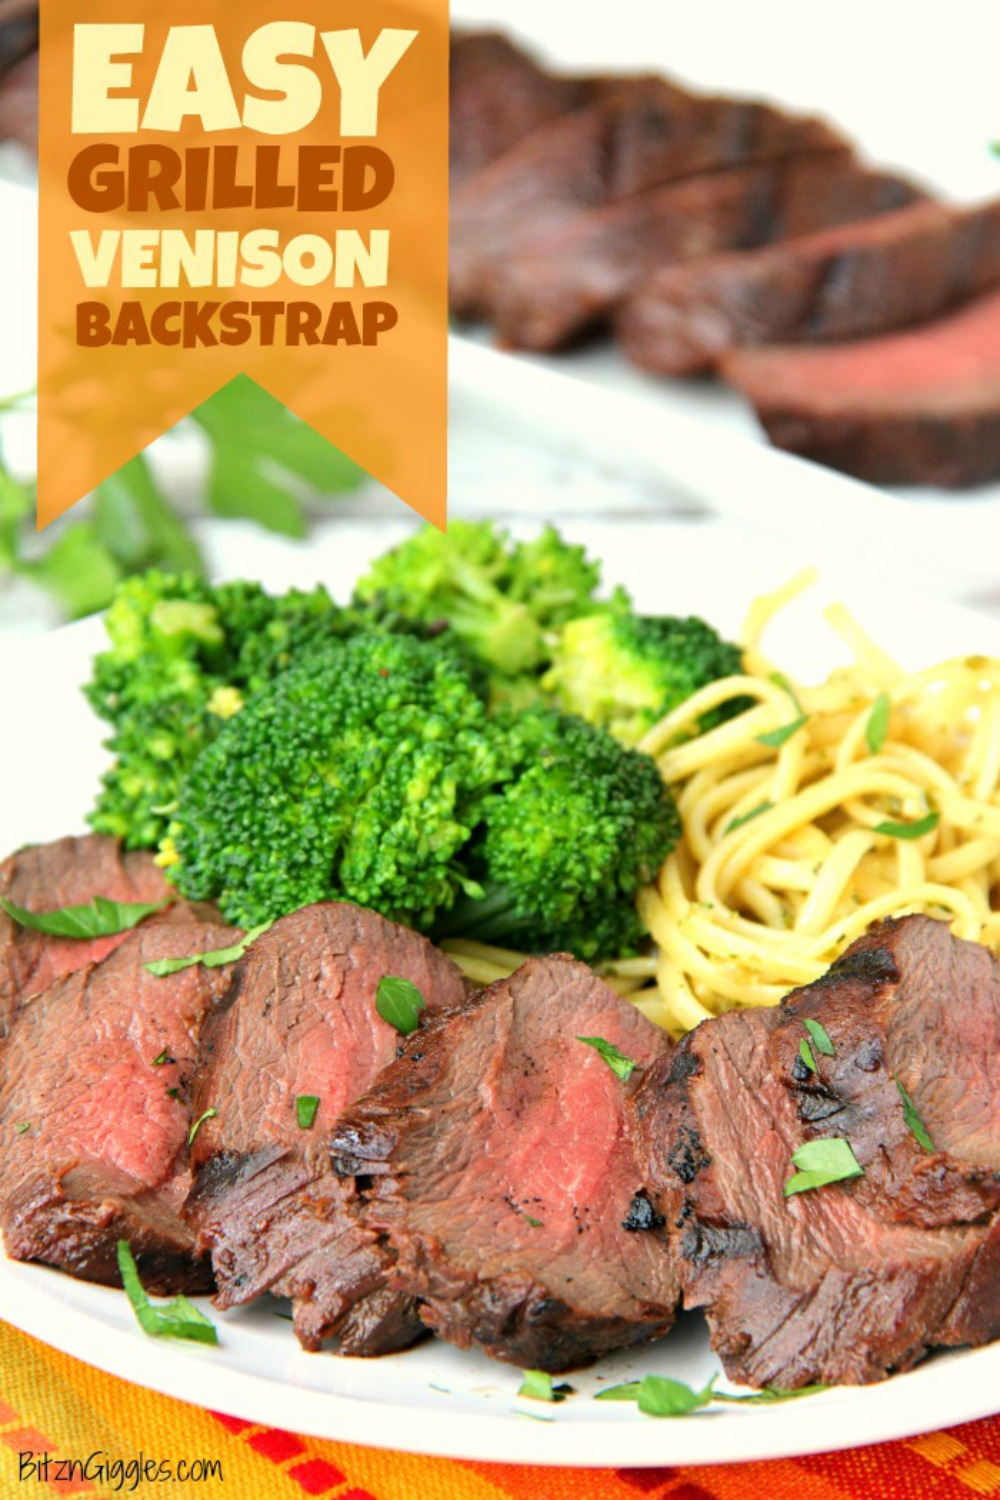 Easy Grilled Venison Backstrap - The best way to prepare venison backstrap! Delicious and flavorful with no gamey taste!